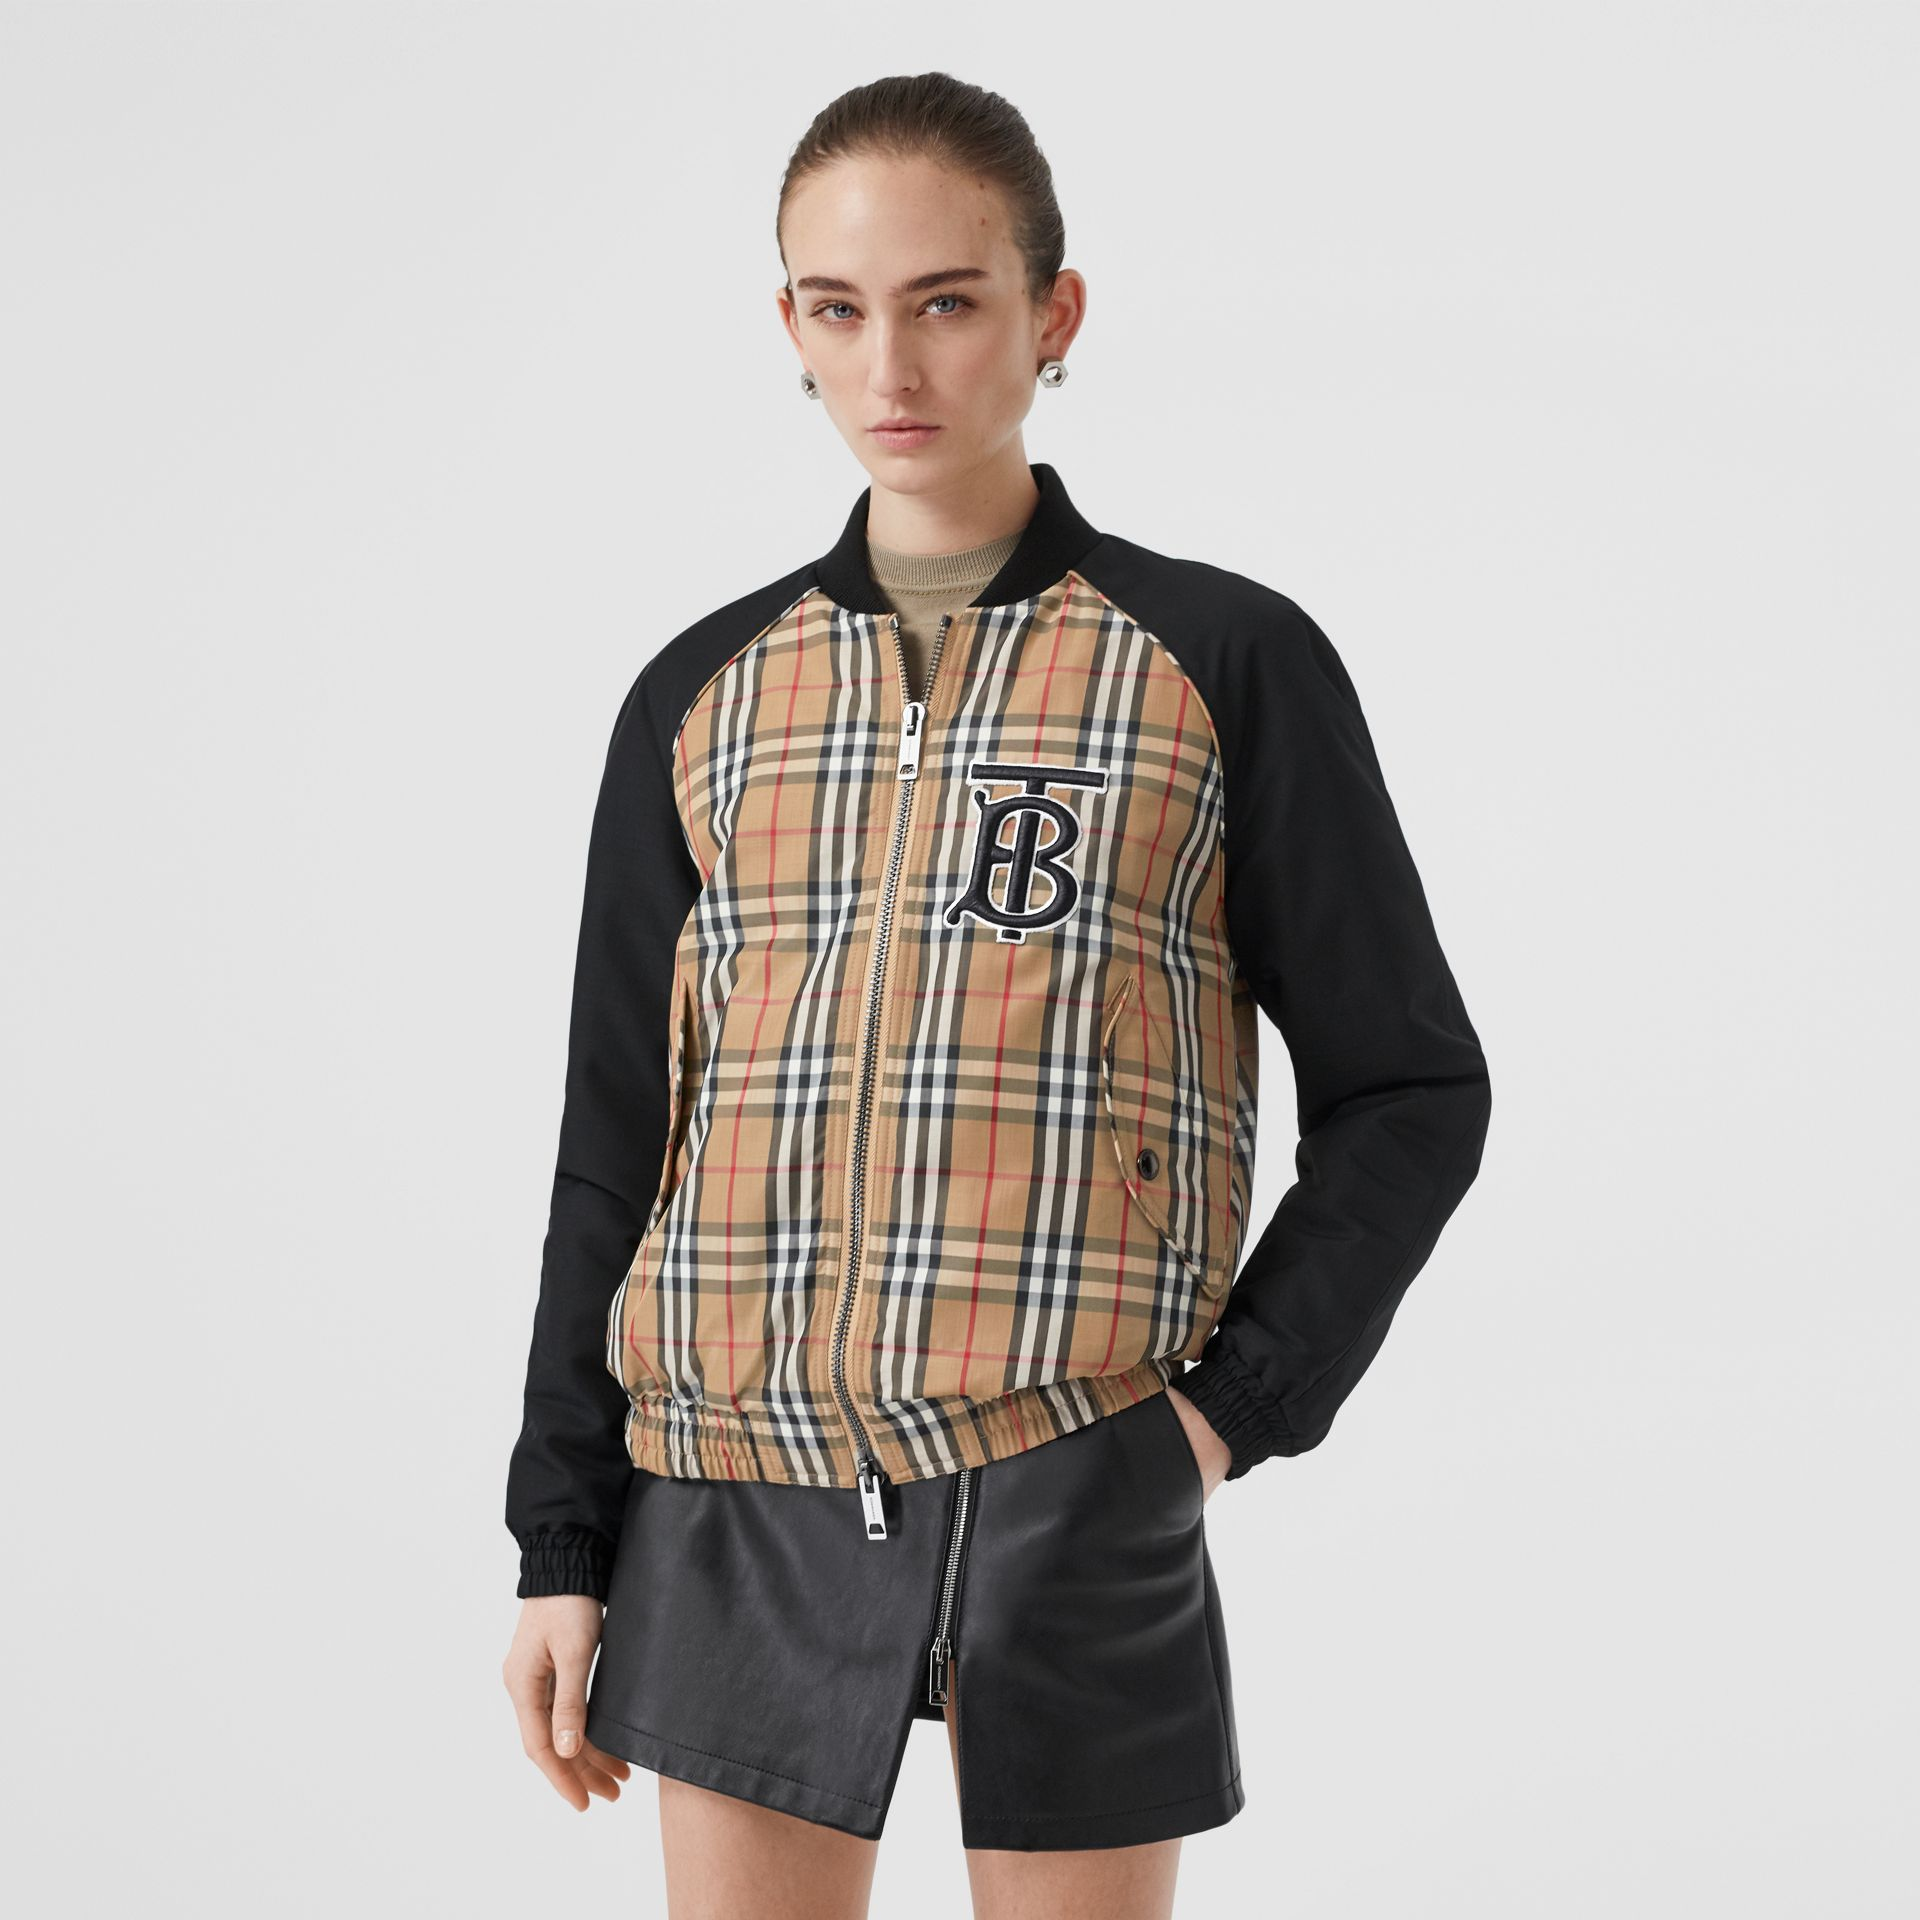 Monogram Motif Vintage Check Bomber Jacket in Black - Women | Burberry Singapore - gallery image 4